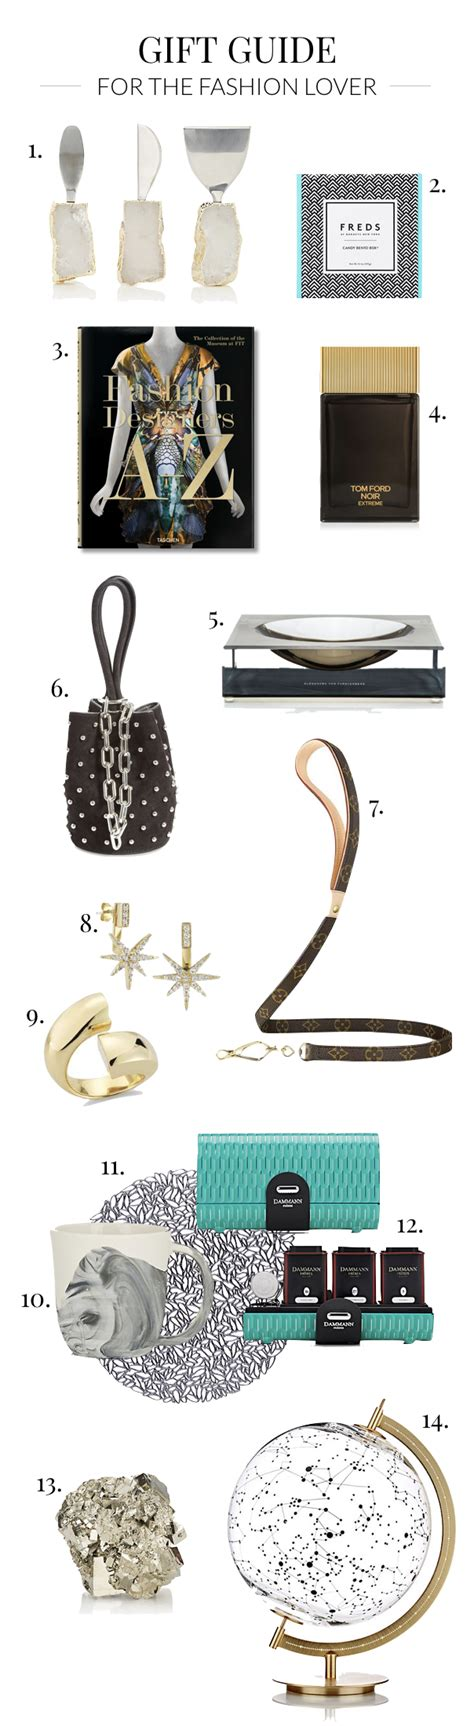 gifts for fashion designers 2016 gift guide fashion lover pulp design studios